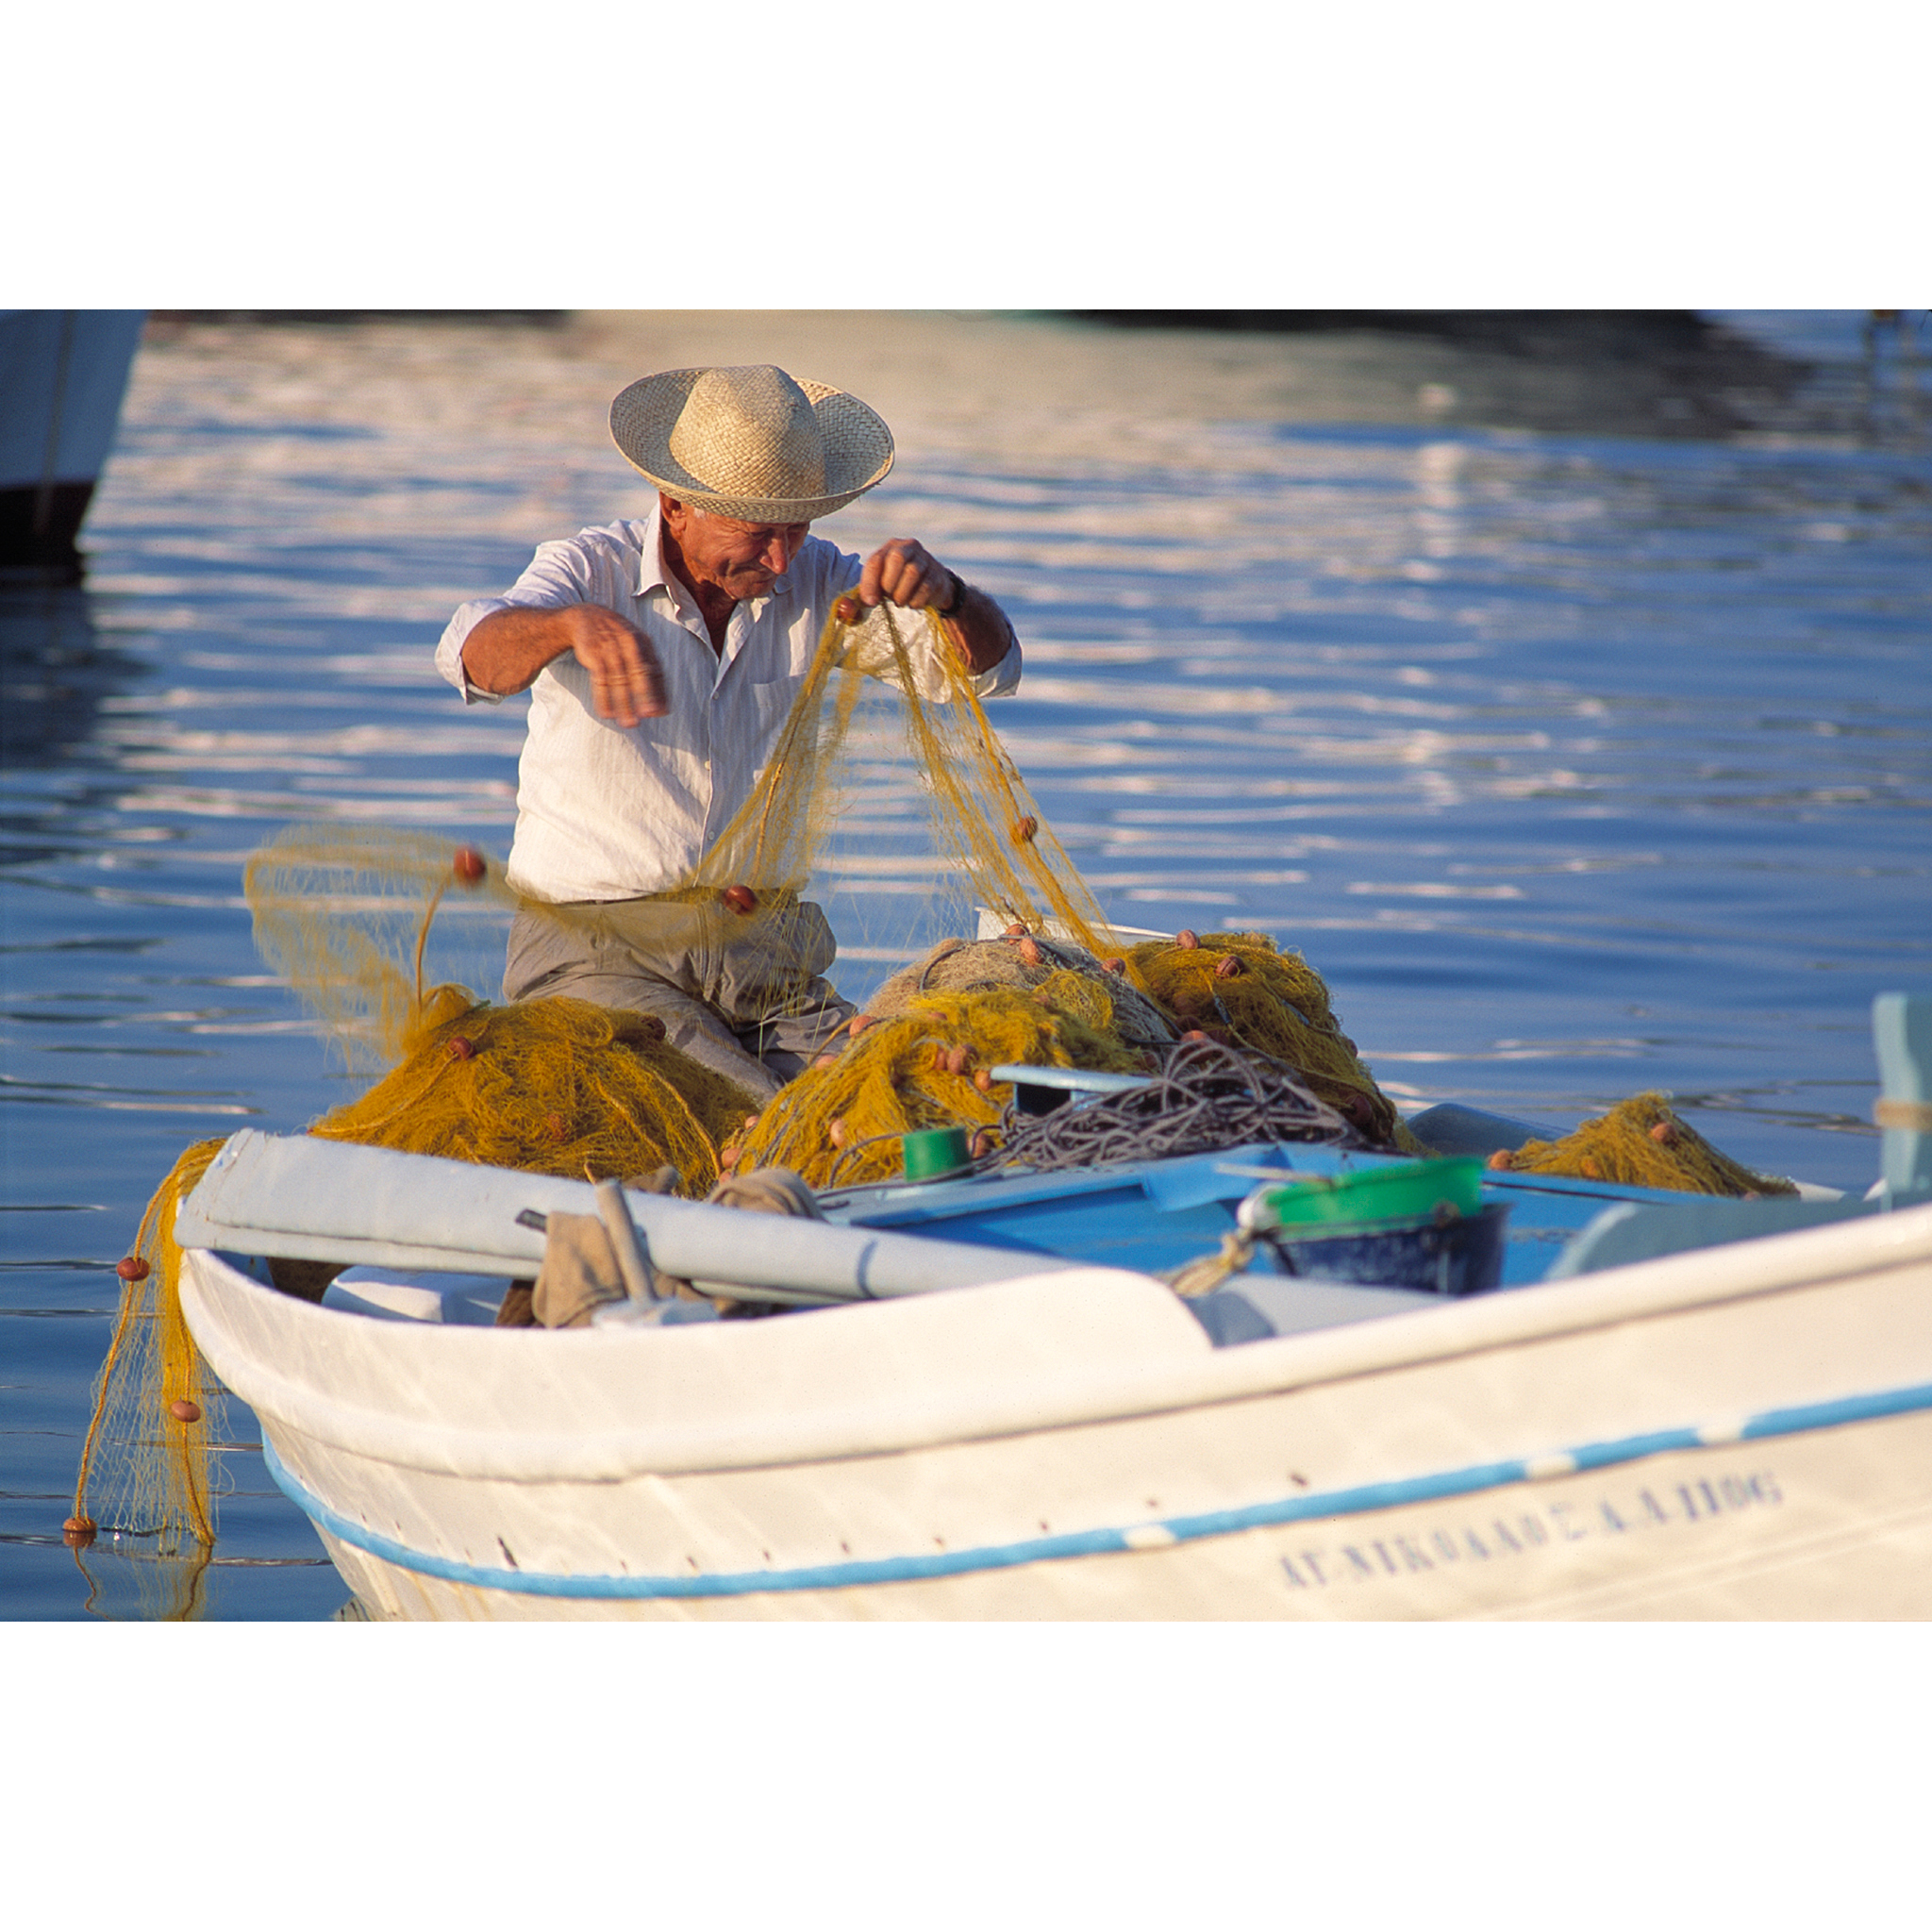 Photograph of a Greek fisherman in fishing boat tending nets